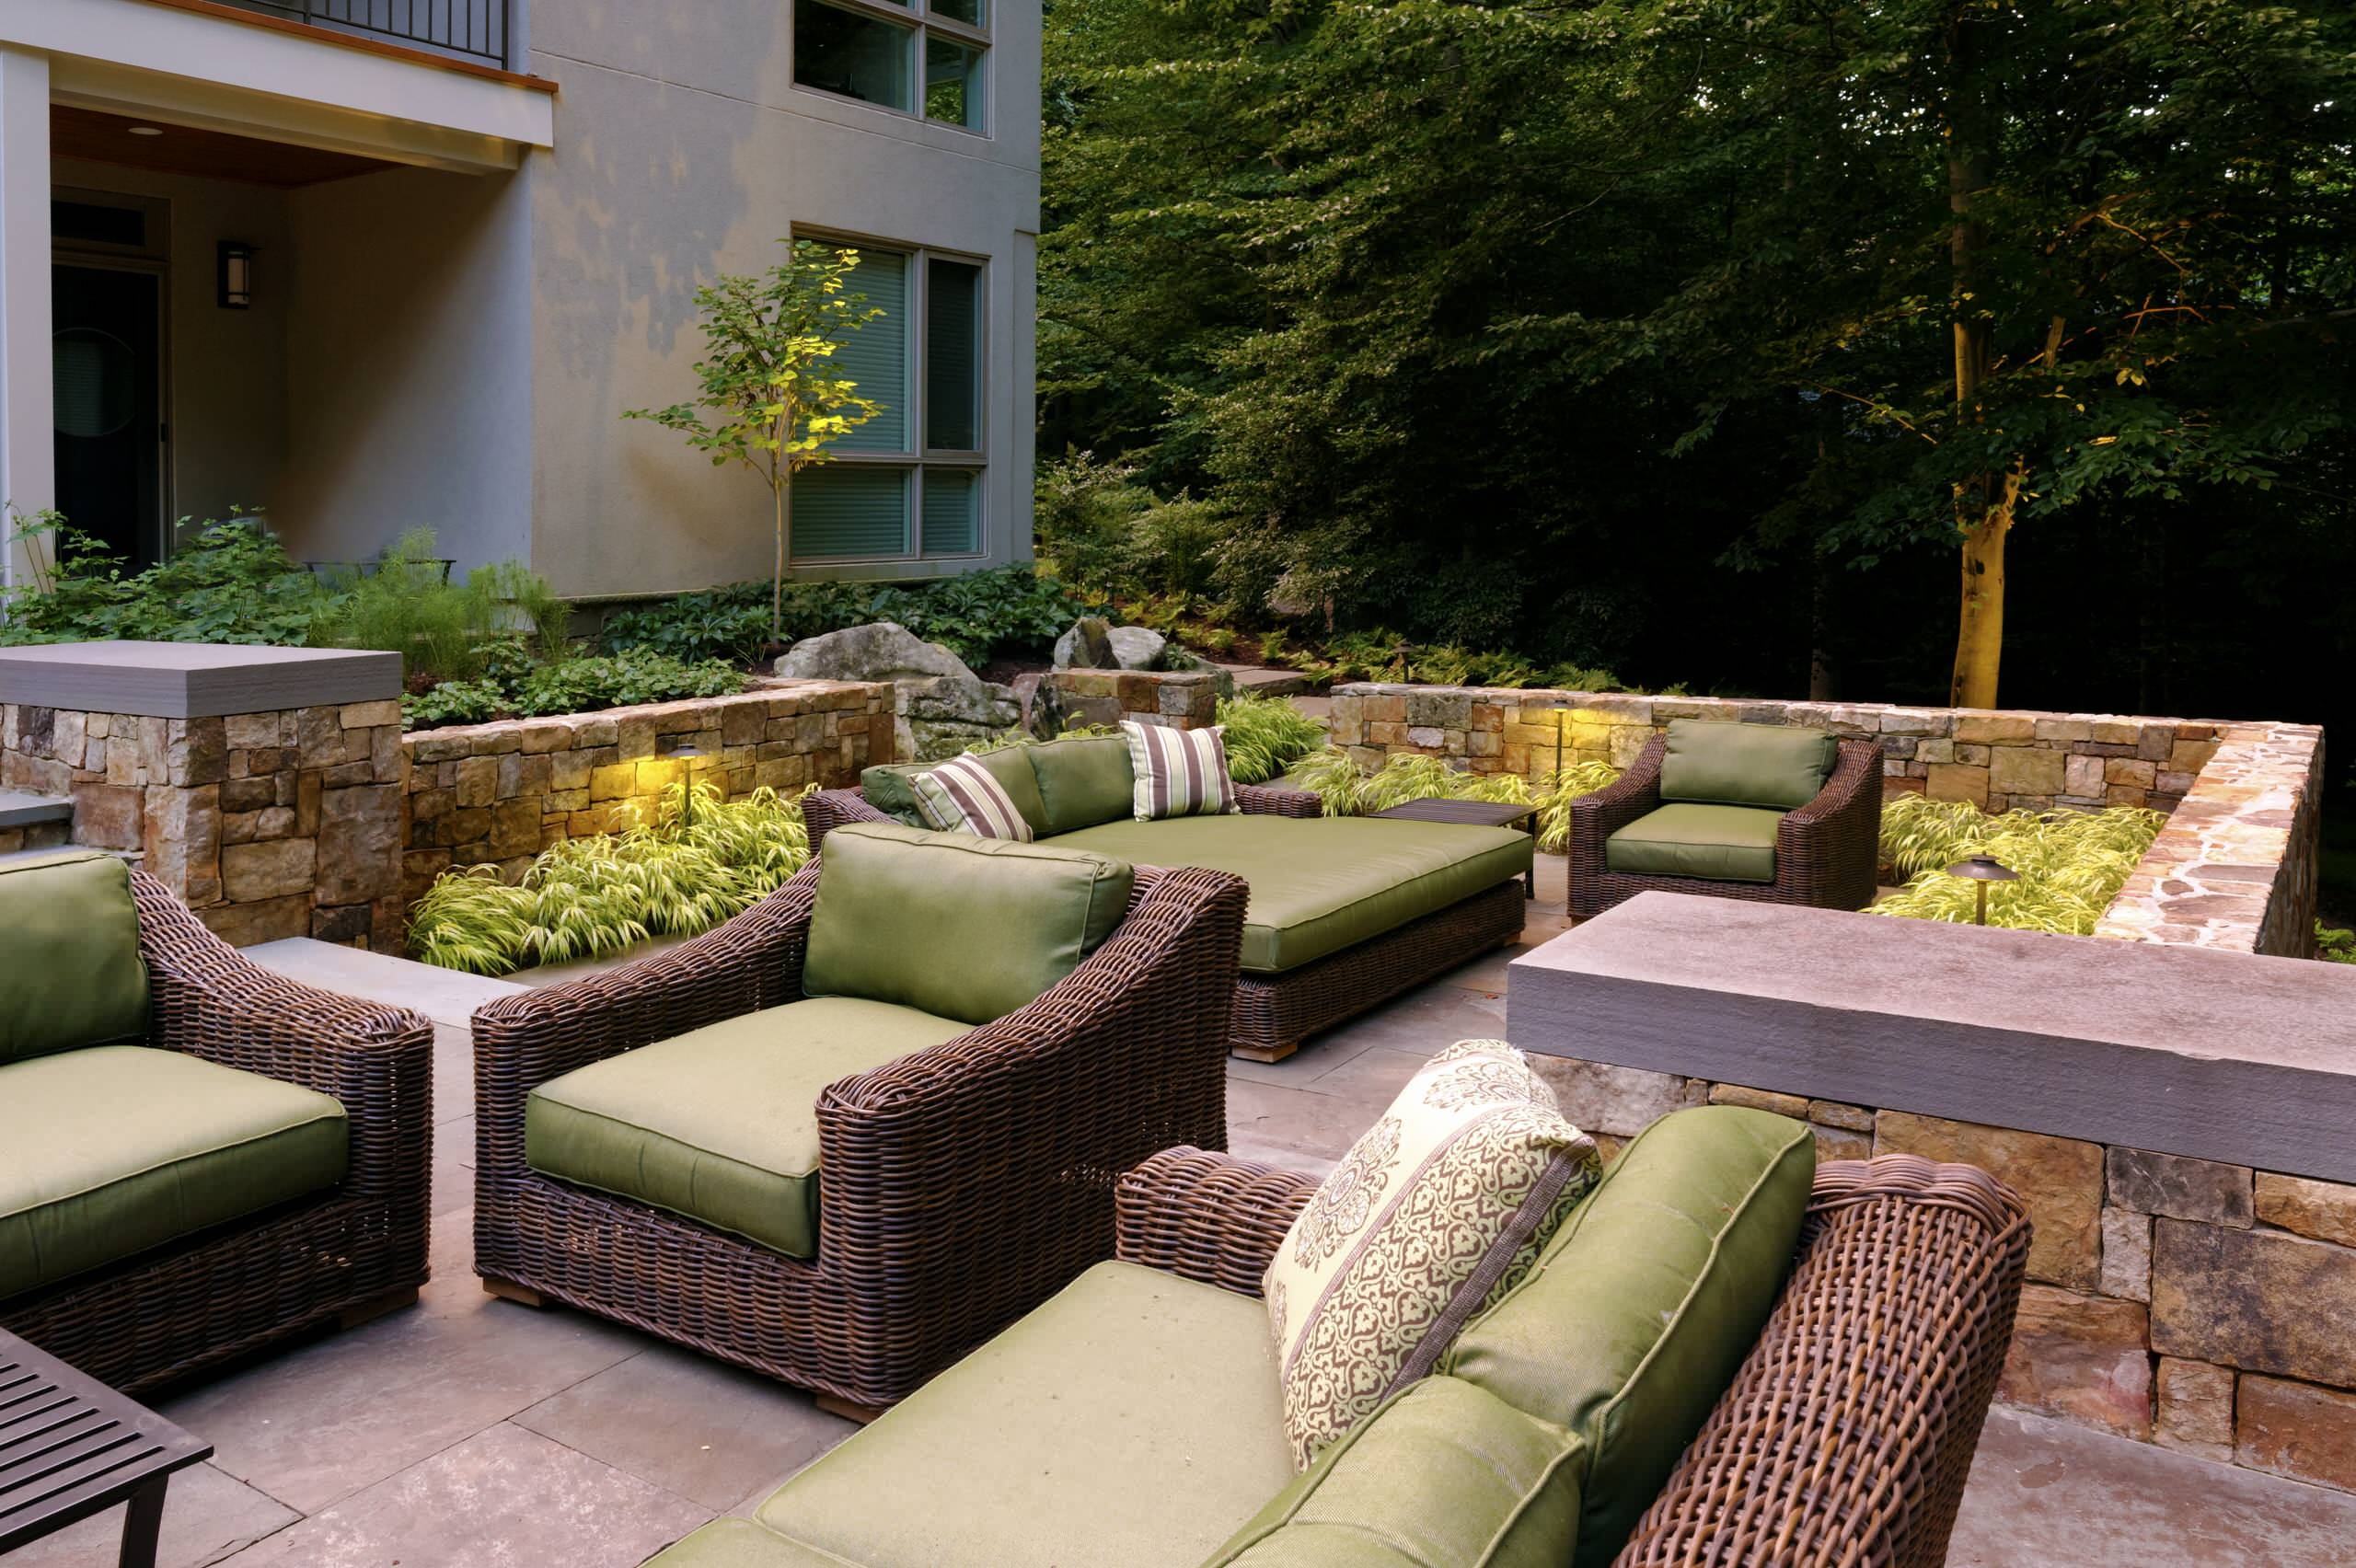 Outdoor Chairs and Loungers Transitional Patio Green Seat Cushions